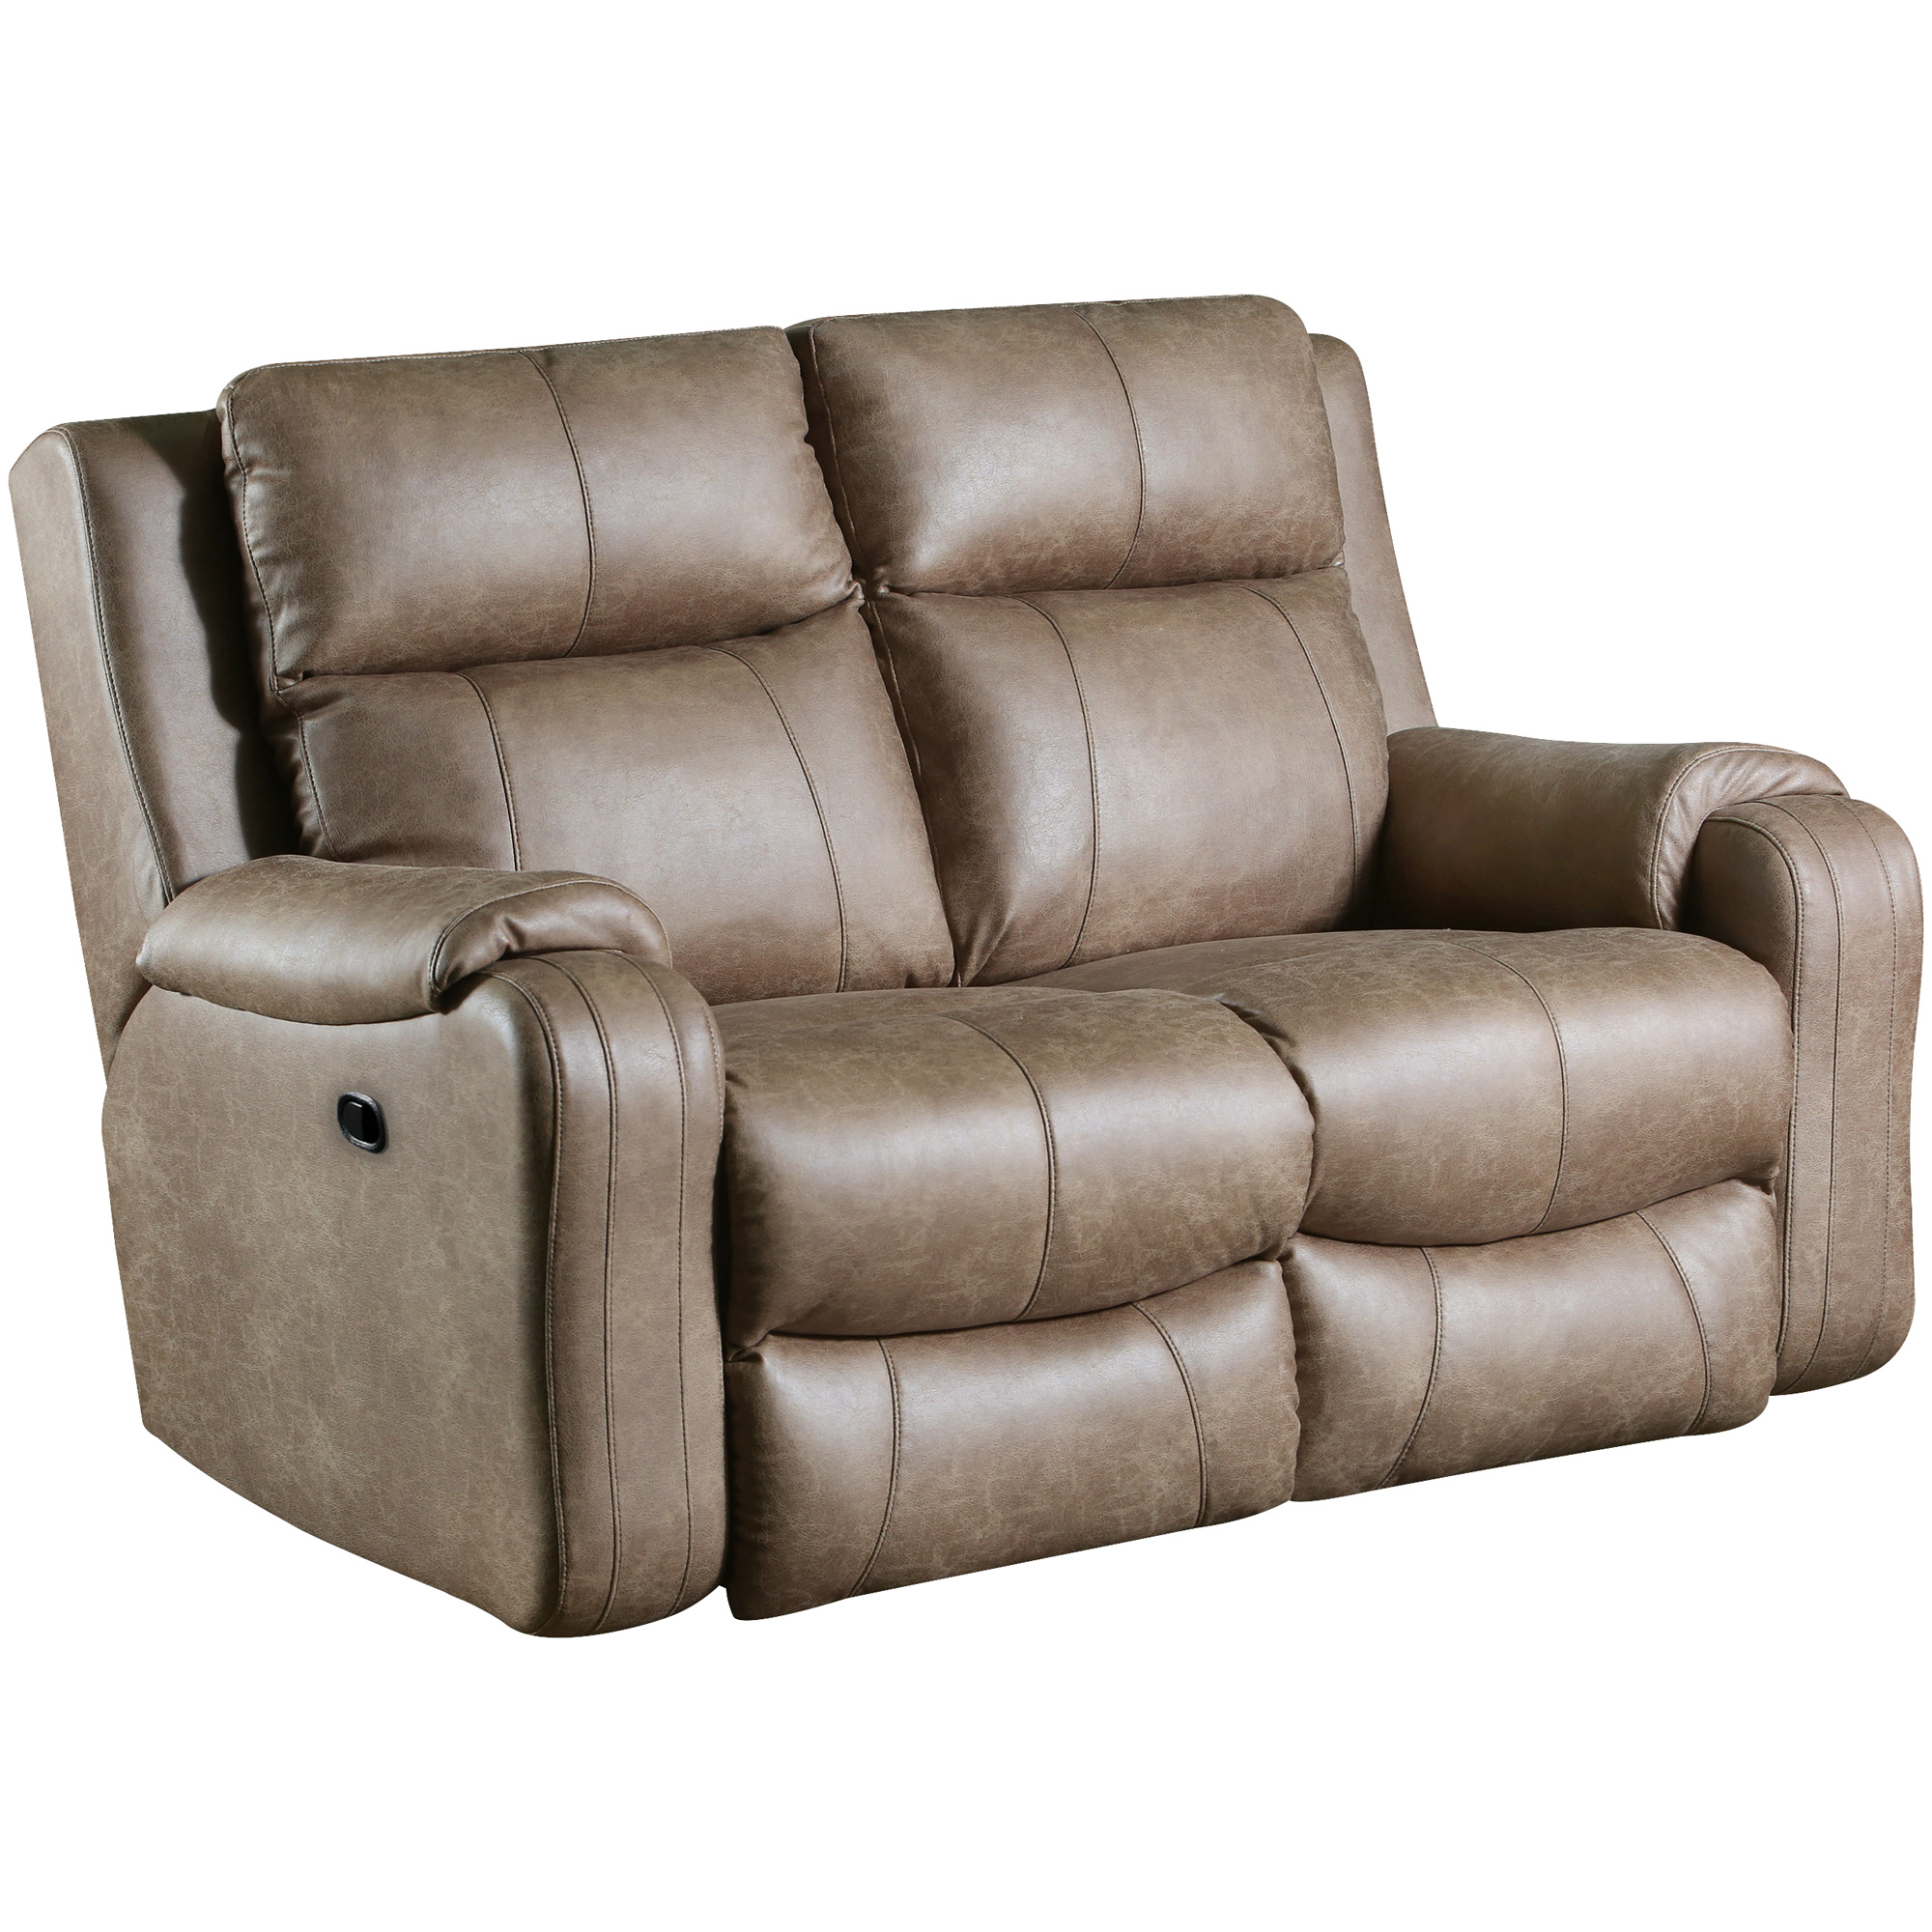 Southern Motion | Contour Vintage Reclining Loveseat Sofa